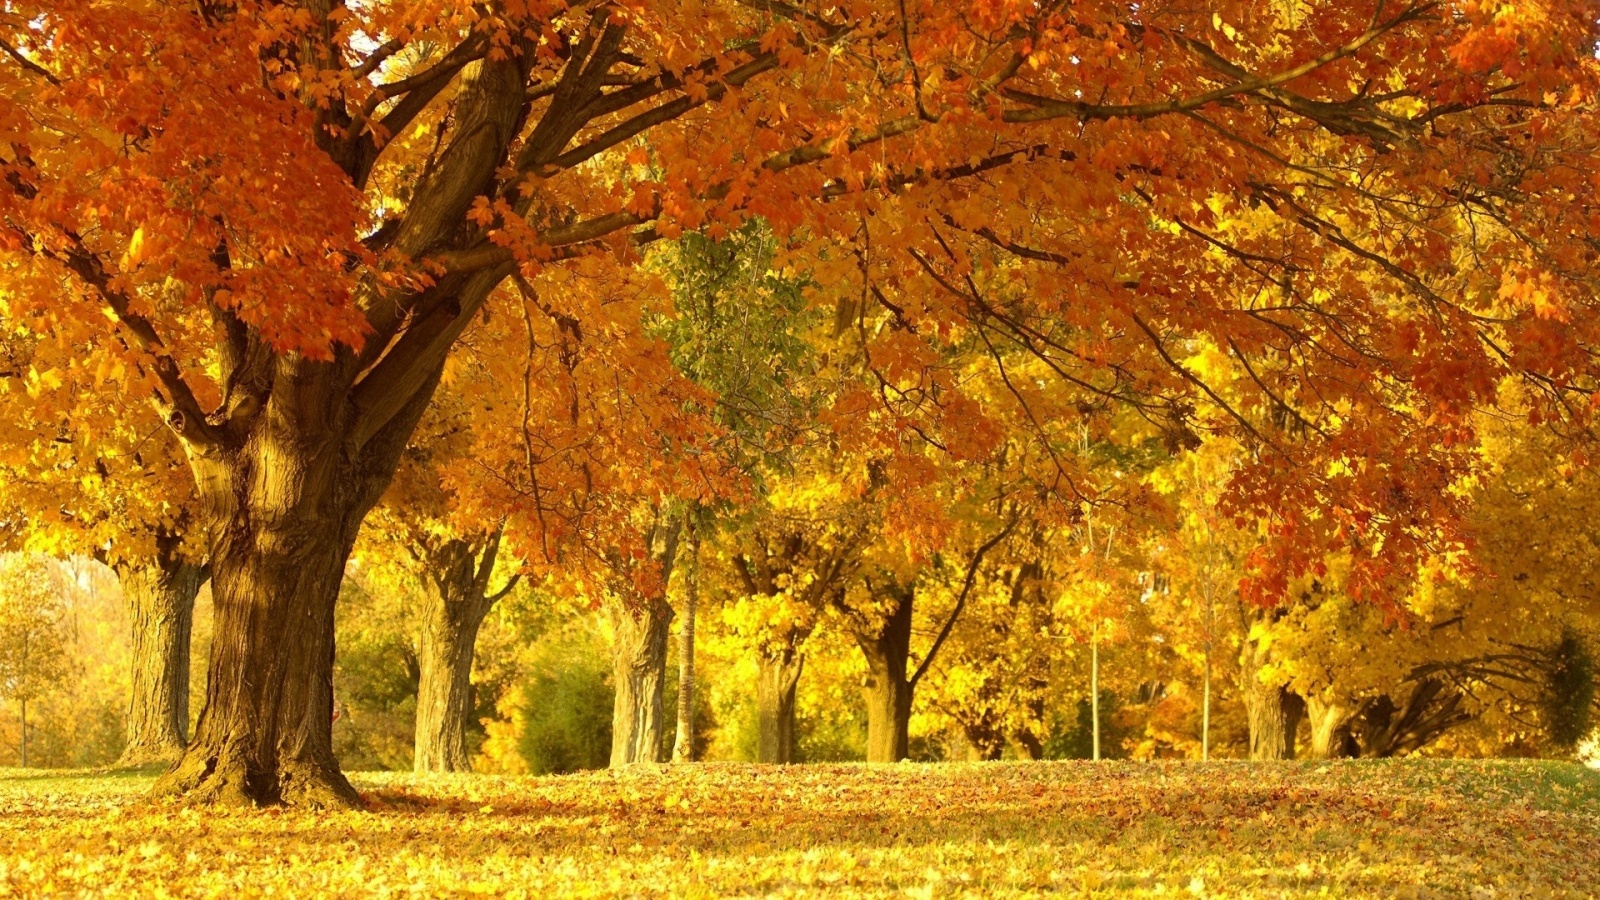 Autumn Scenery HD Wallpapers